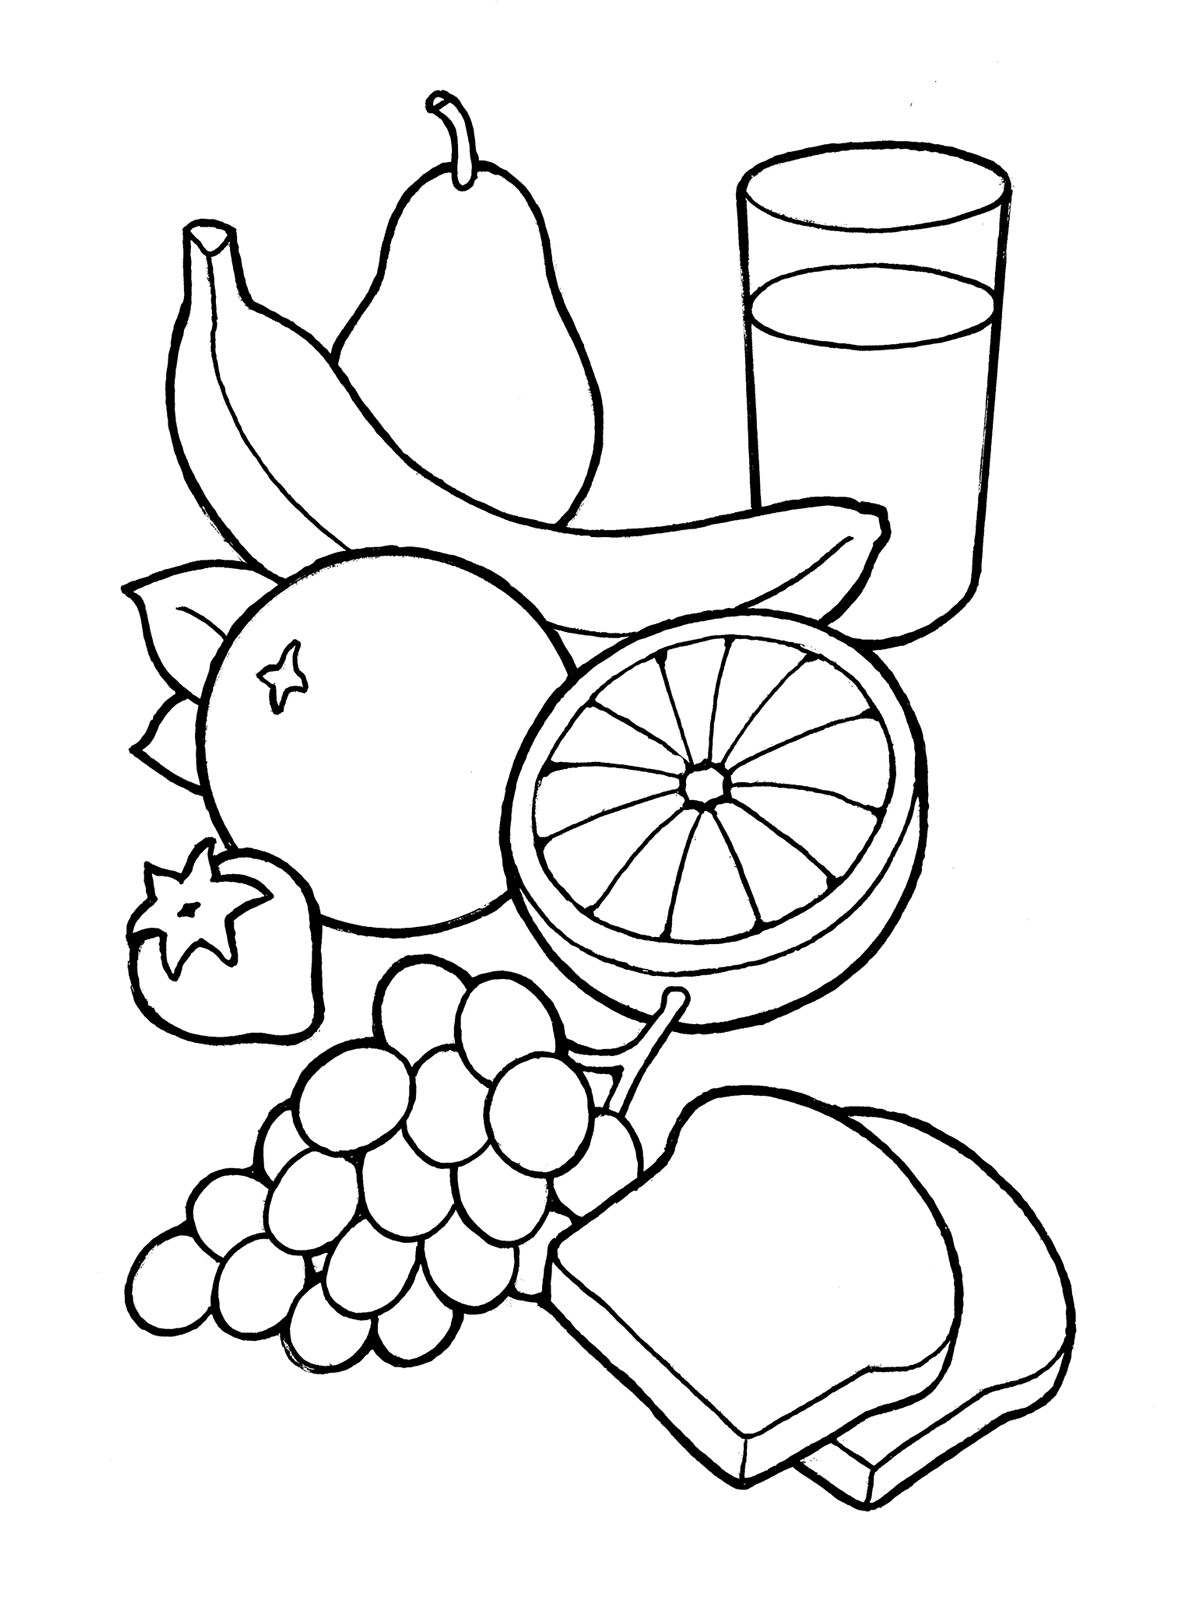 Grape clipart healthy food Food Download